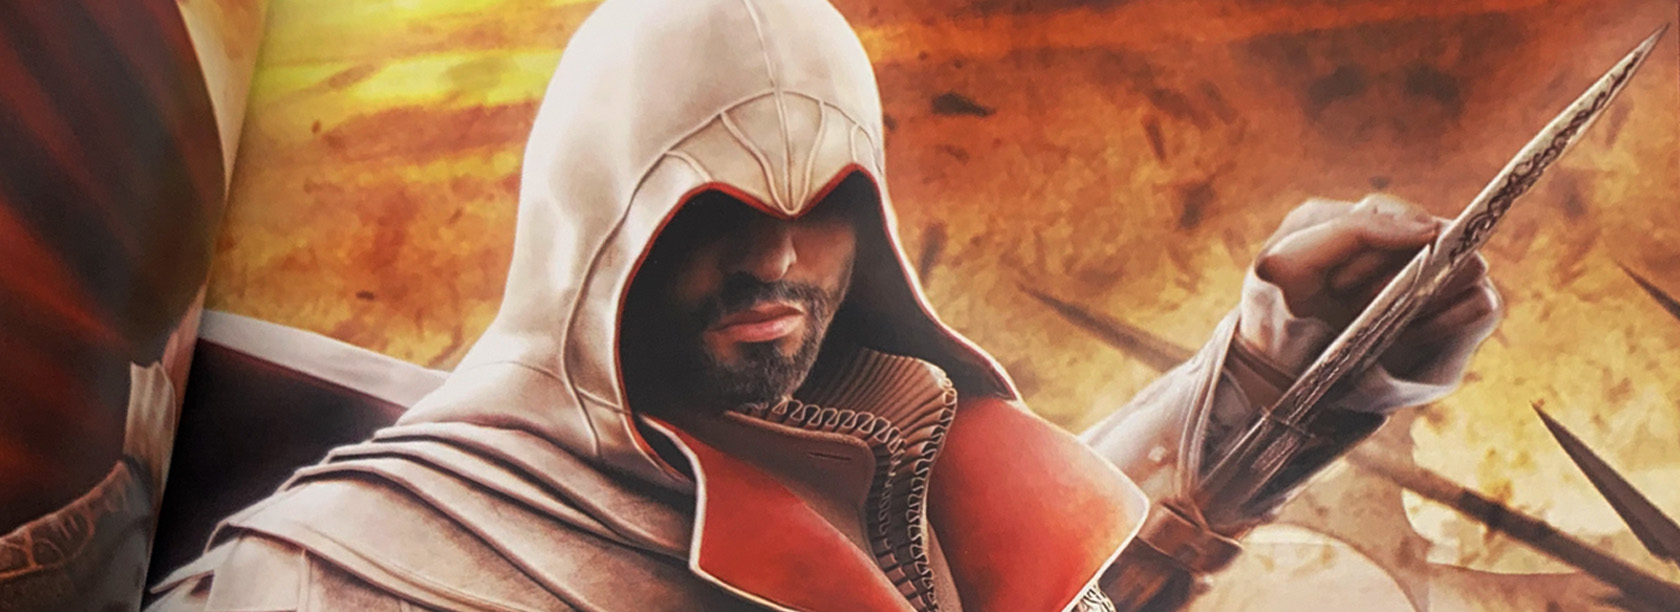 assassins-creed-top-2b2Kup5xpYXLux